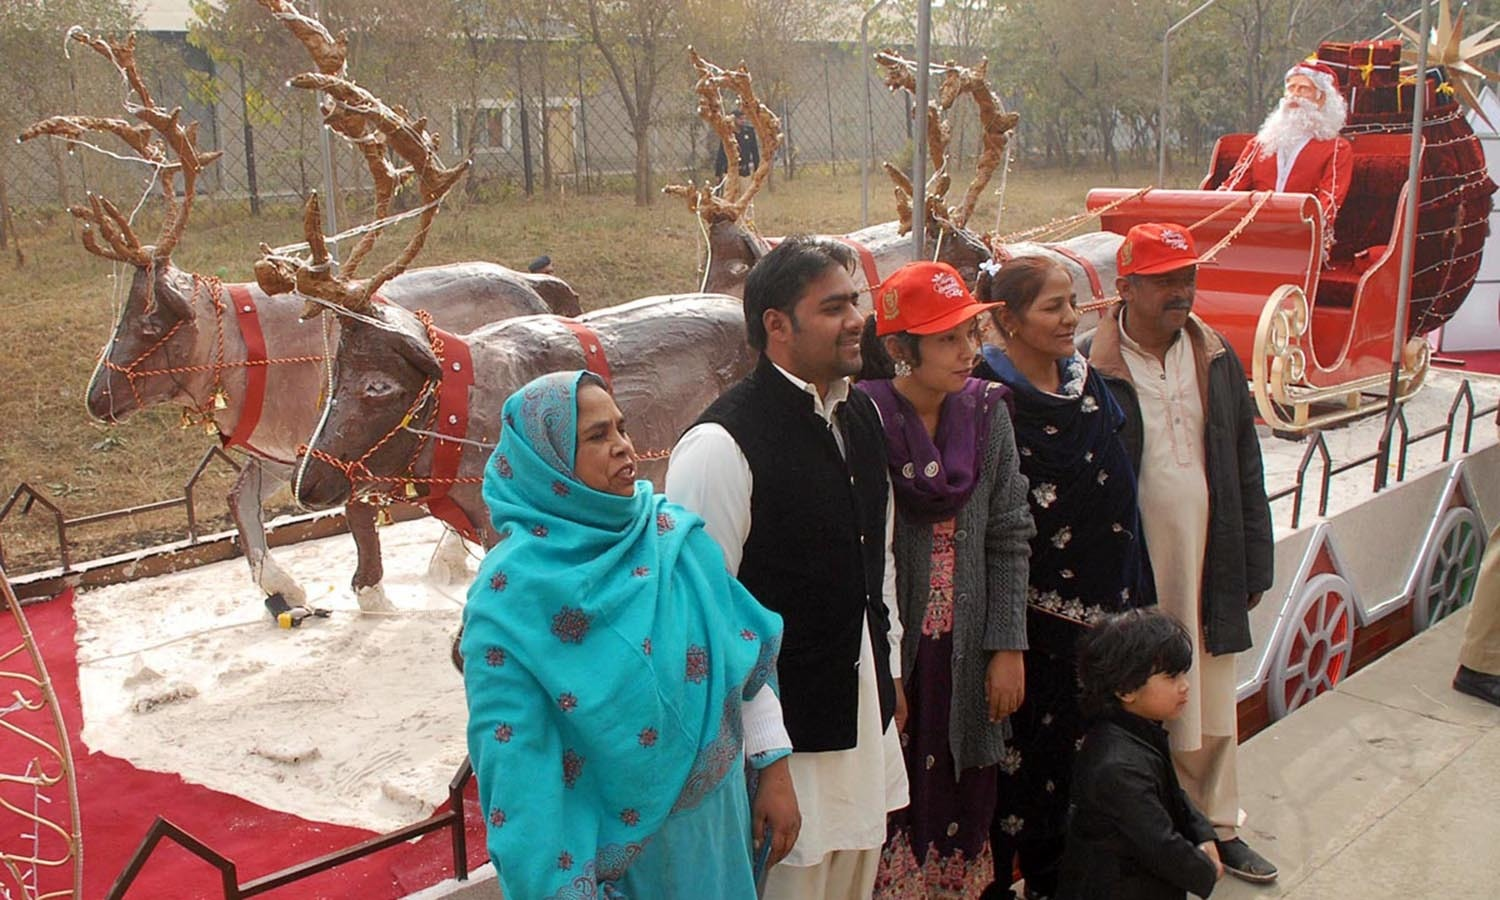 People take pictures with reindeer chariot with Santa Claus during inauguration of Christmas train at Islamabad Railway Station ahead of Xmas.─Online photo by Waseem Khan